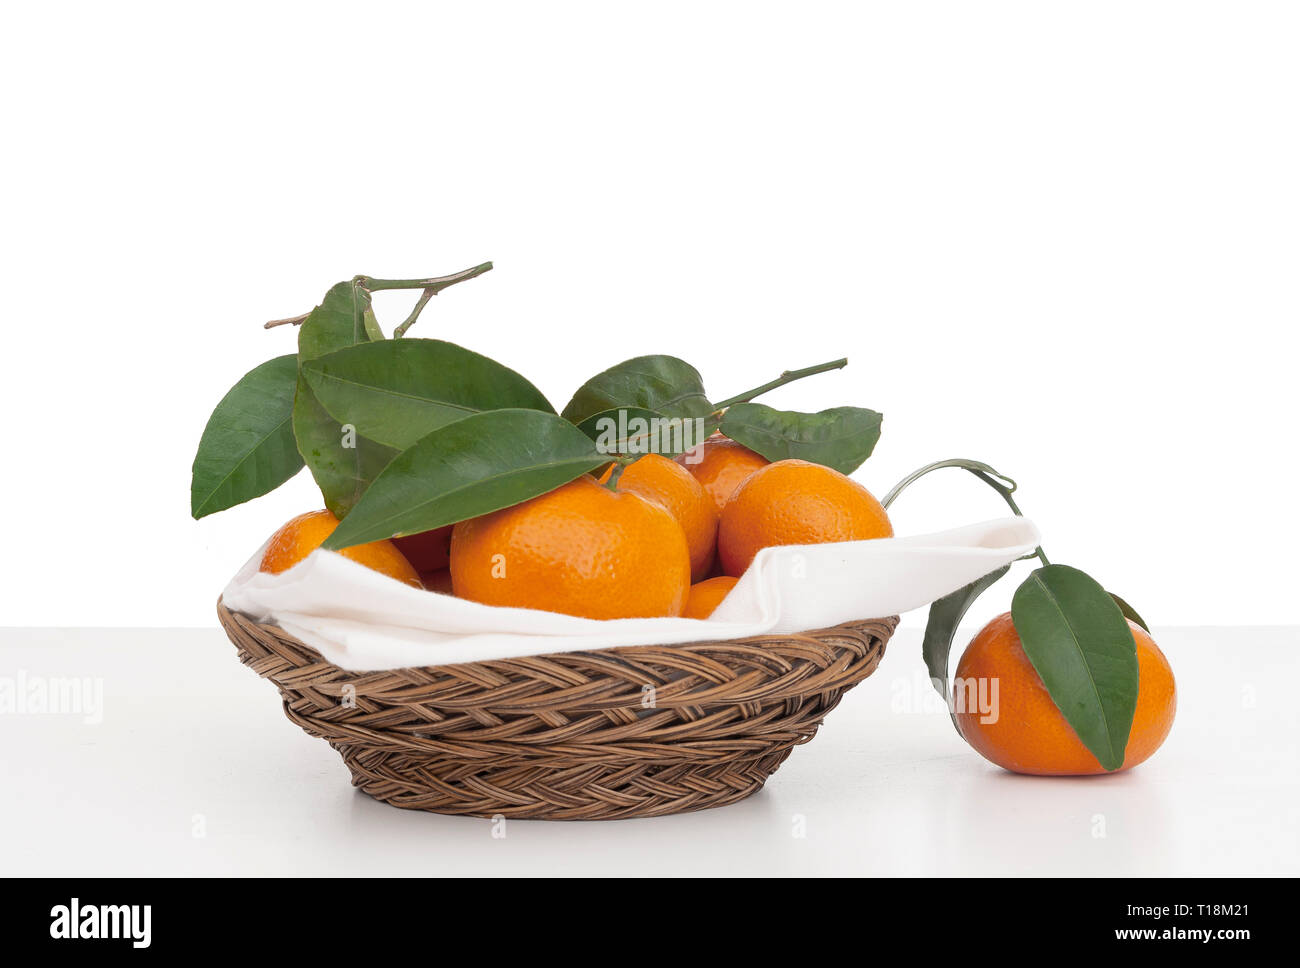 Juicy tangerines, small oranges with leaves in wicker basket with serviette, napkin. Fresh fruit on white, isolated against background. - Stock Image